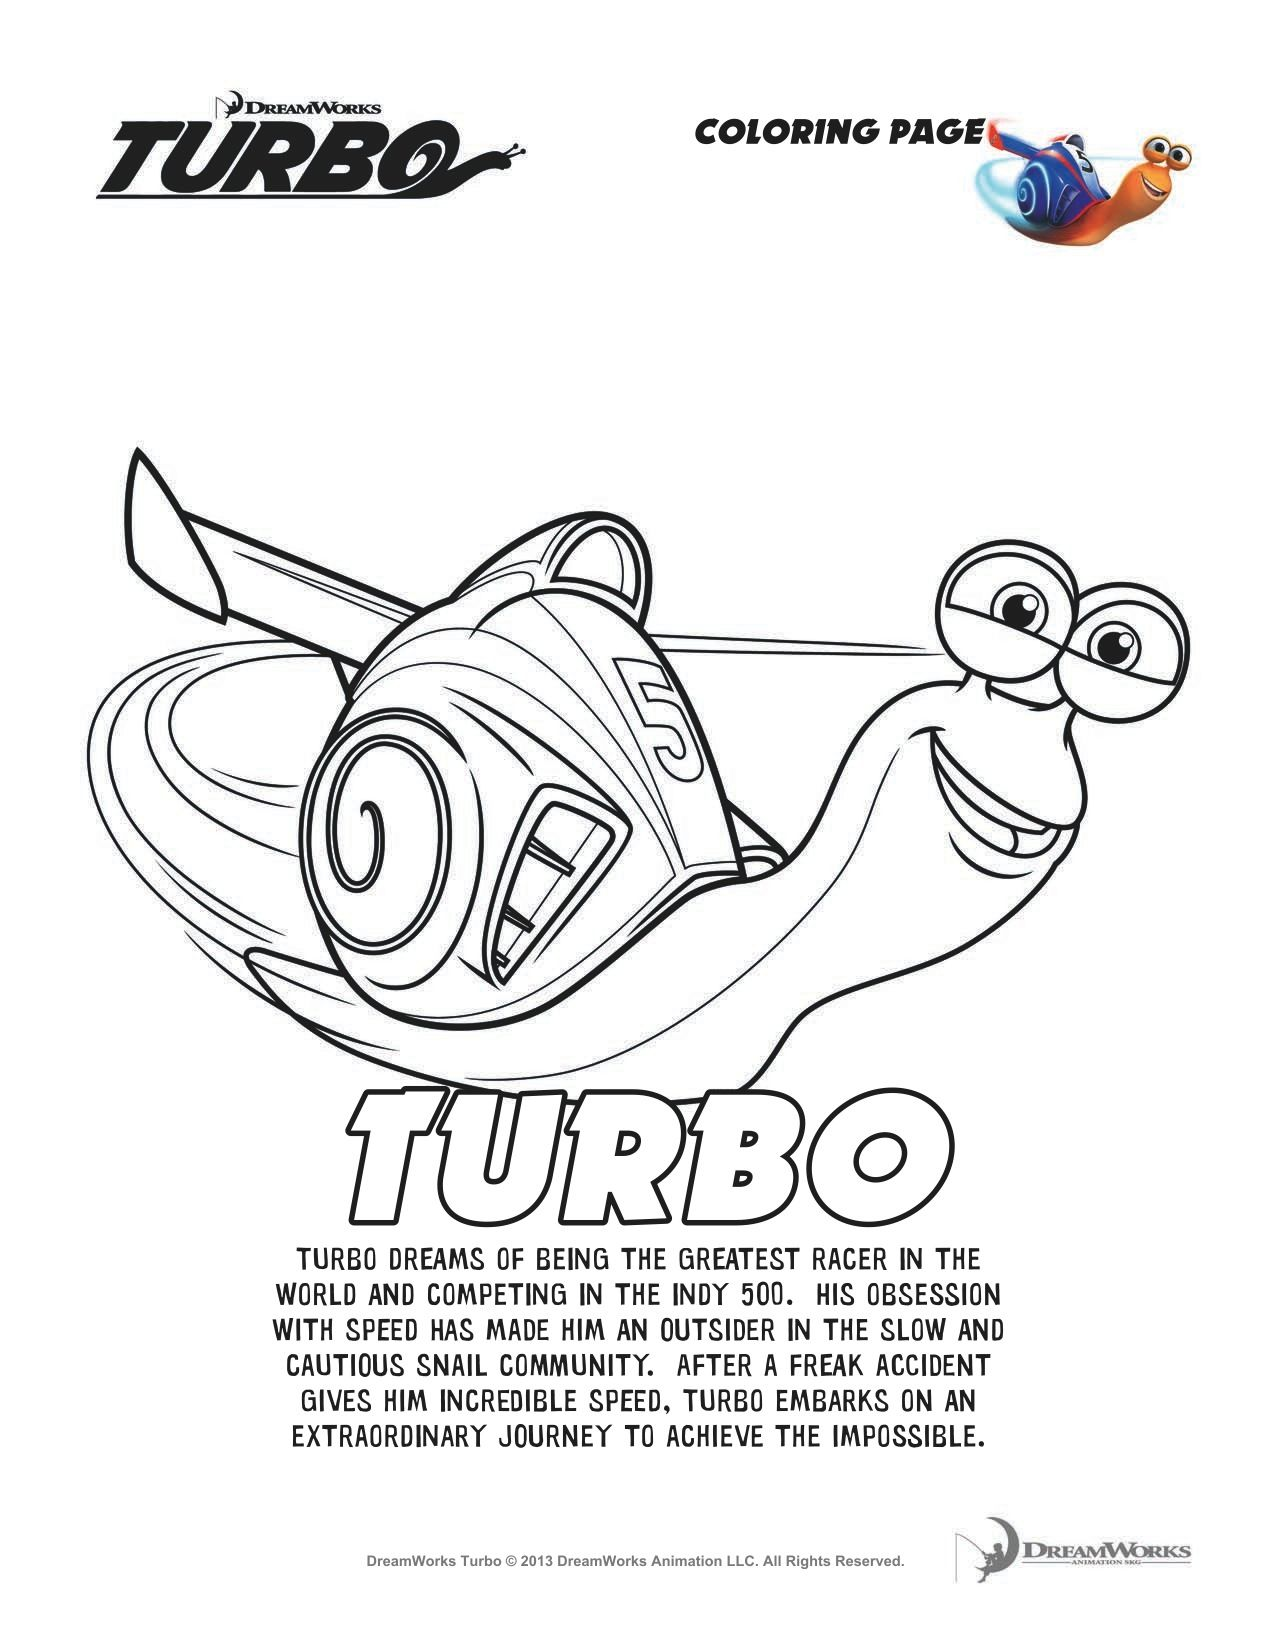 Turbo Coloring Pages and Activity Worksheets!